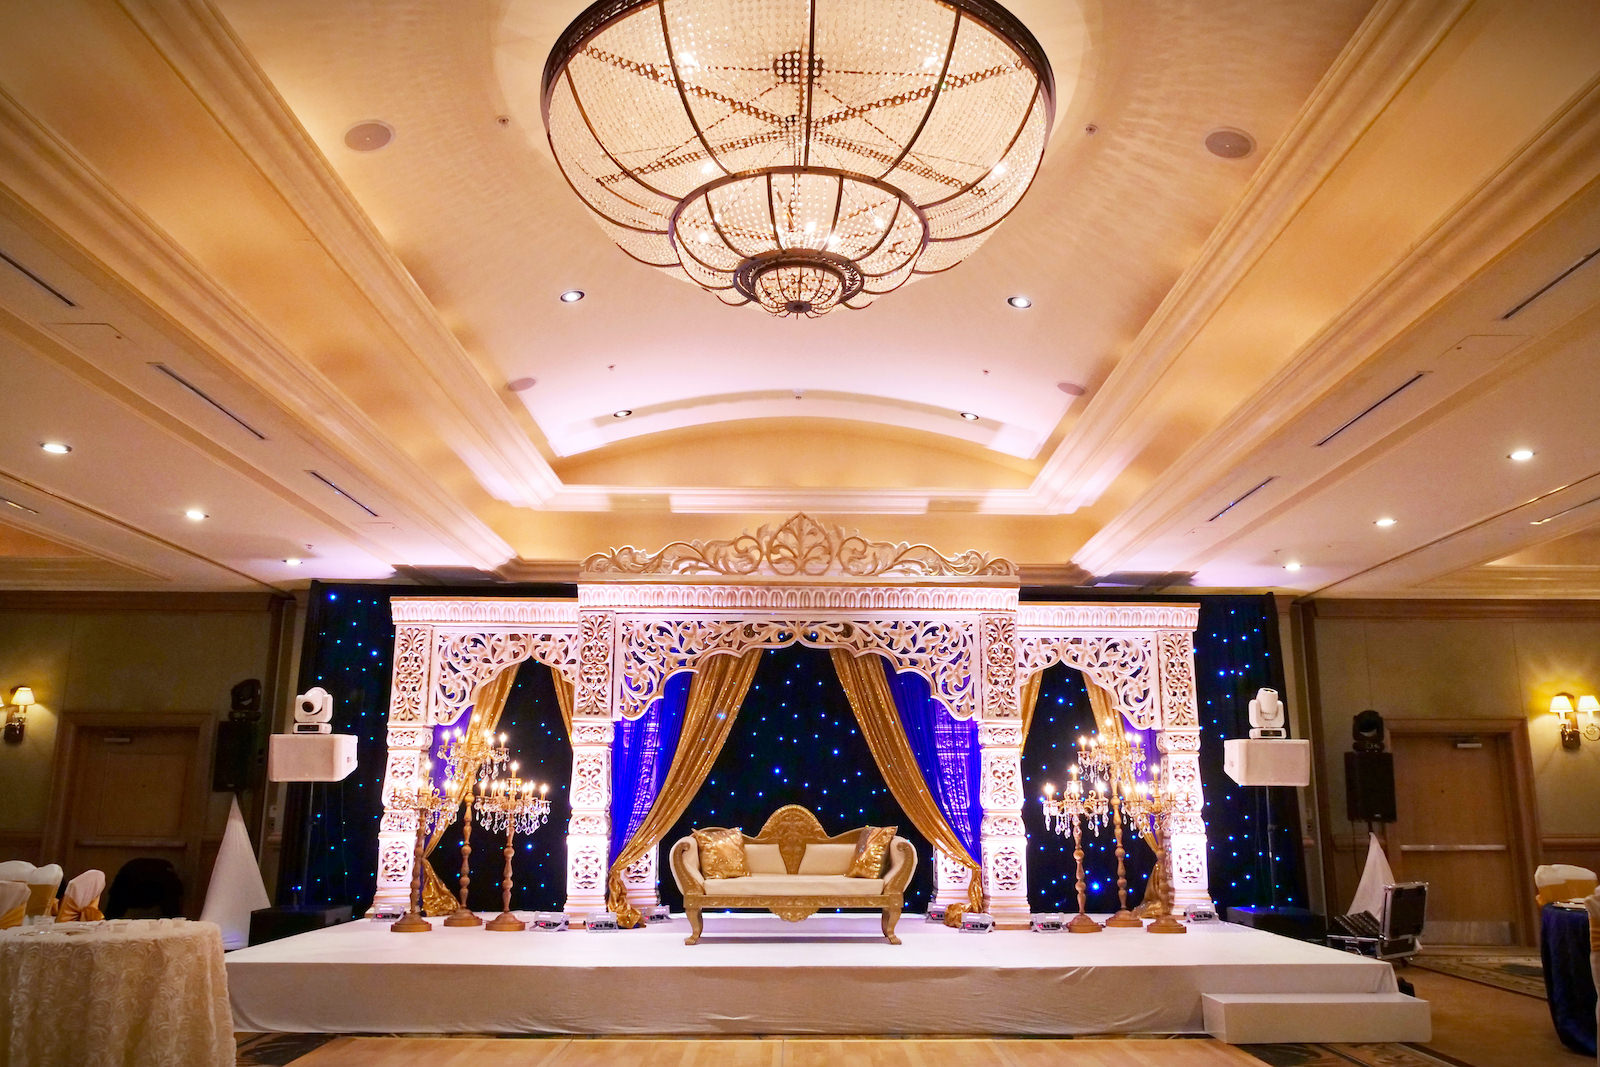 Indian Wedding Reception in Hotel Ballroom | Clearwater Wedding Venue Hyatt Regency Clearwater Beach | White Gold and Blue Indian Wedding Mandap Stage with Gold Candelabras and Gold Loveseat